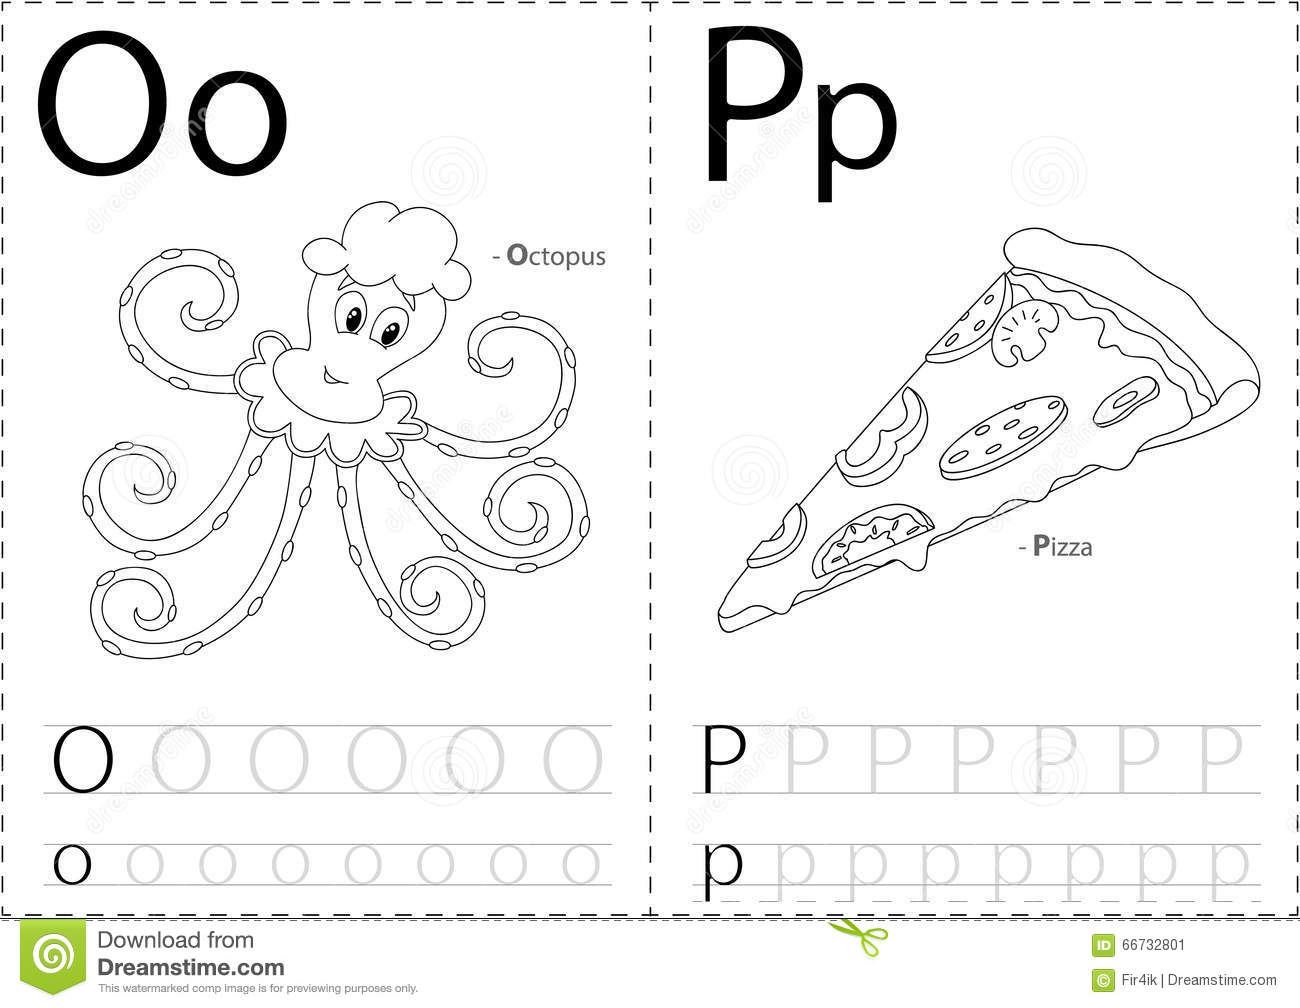 Cartoon Octopus And Pizza. Alphabet Tracing Worksheet: Writing A ...